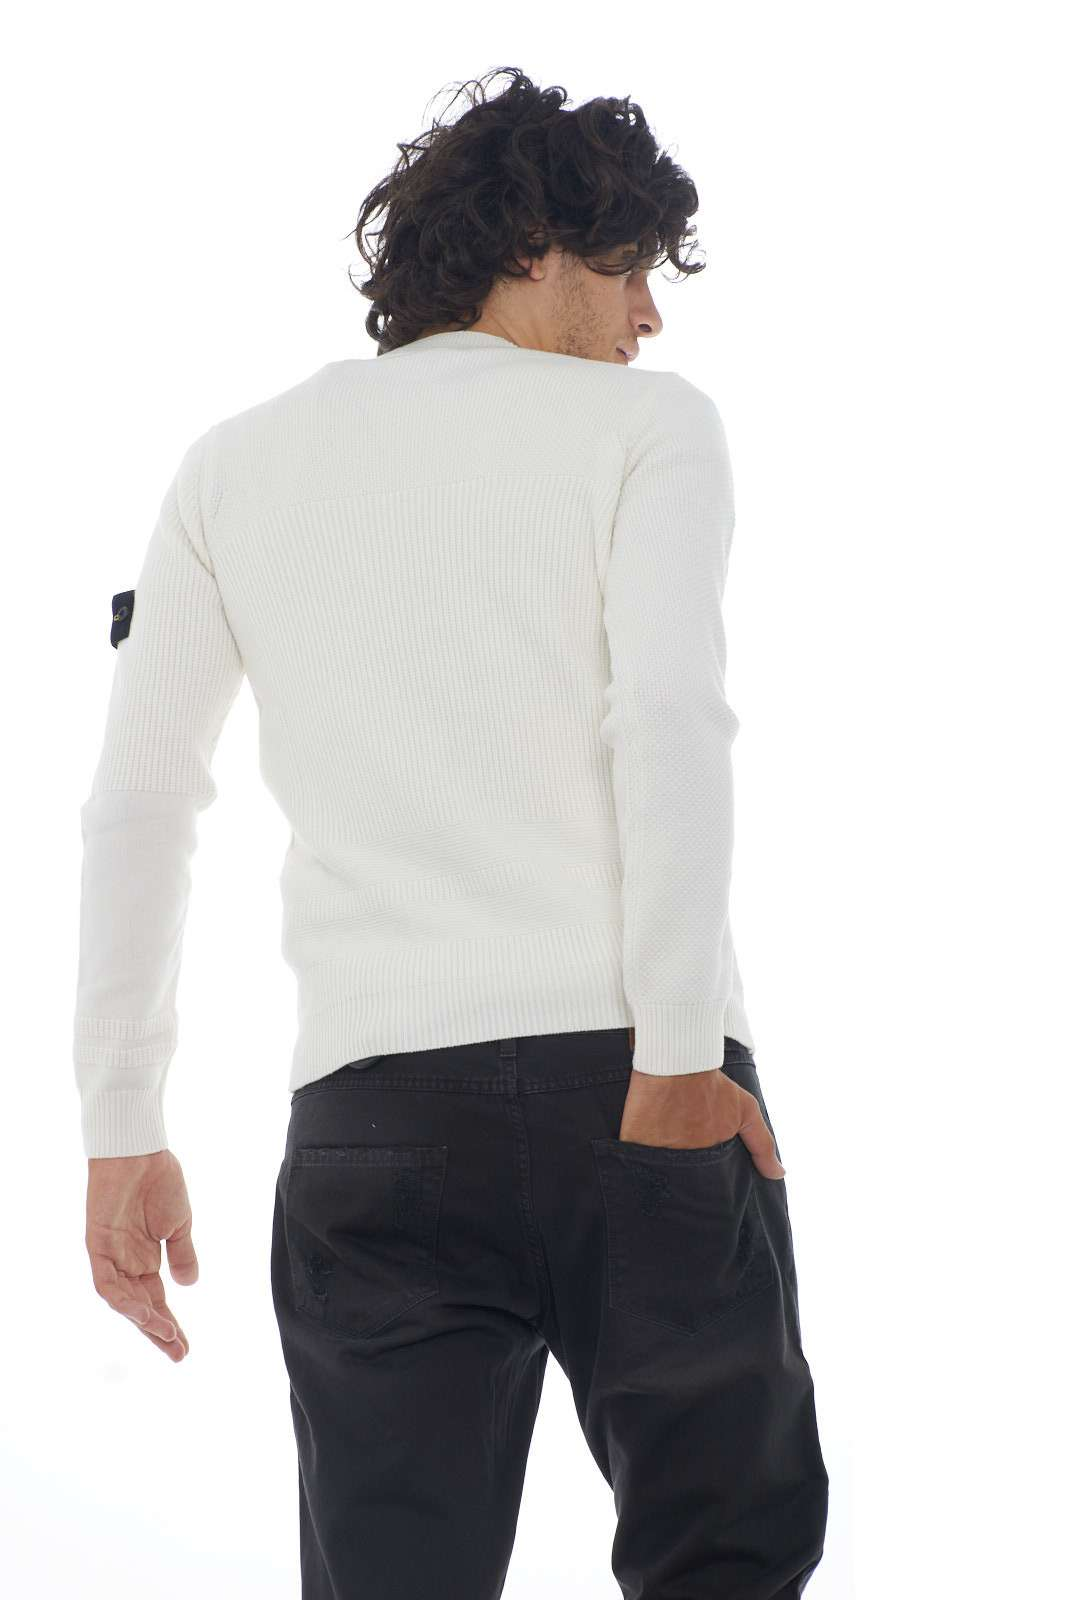 https://www.parmax.com/media/catalog/product/a/i/AI-outlet_parmax-maglia-uomo-Stone-Island-7115592A1-C.jpg